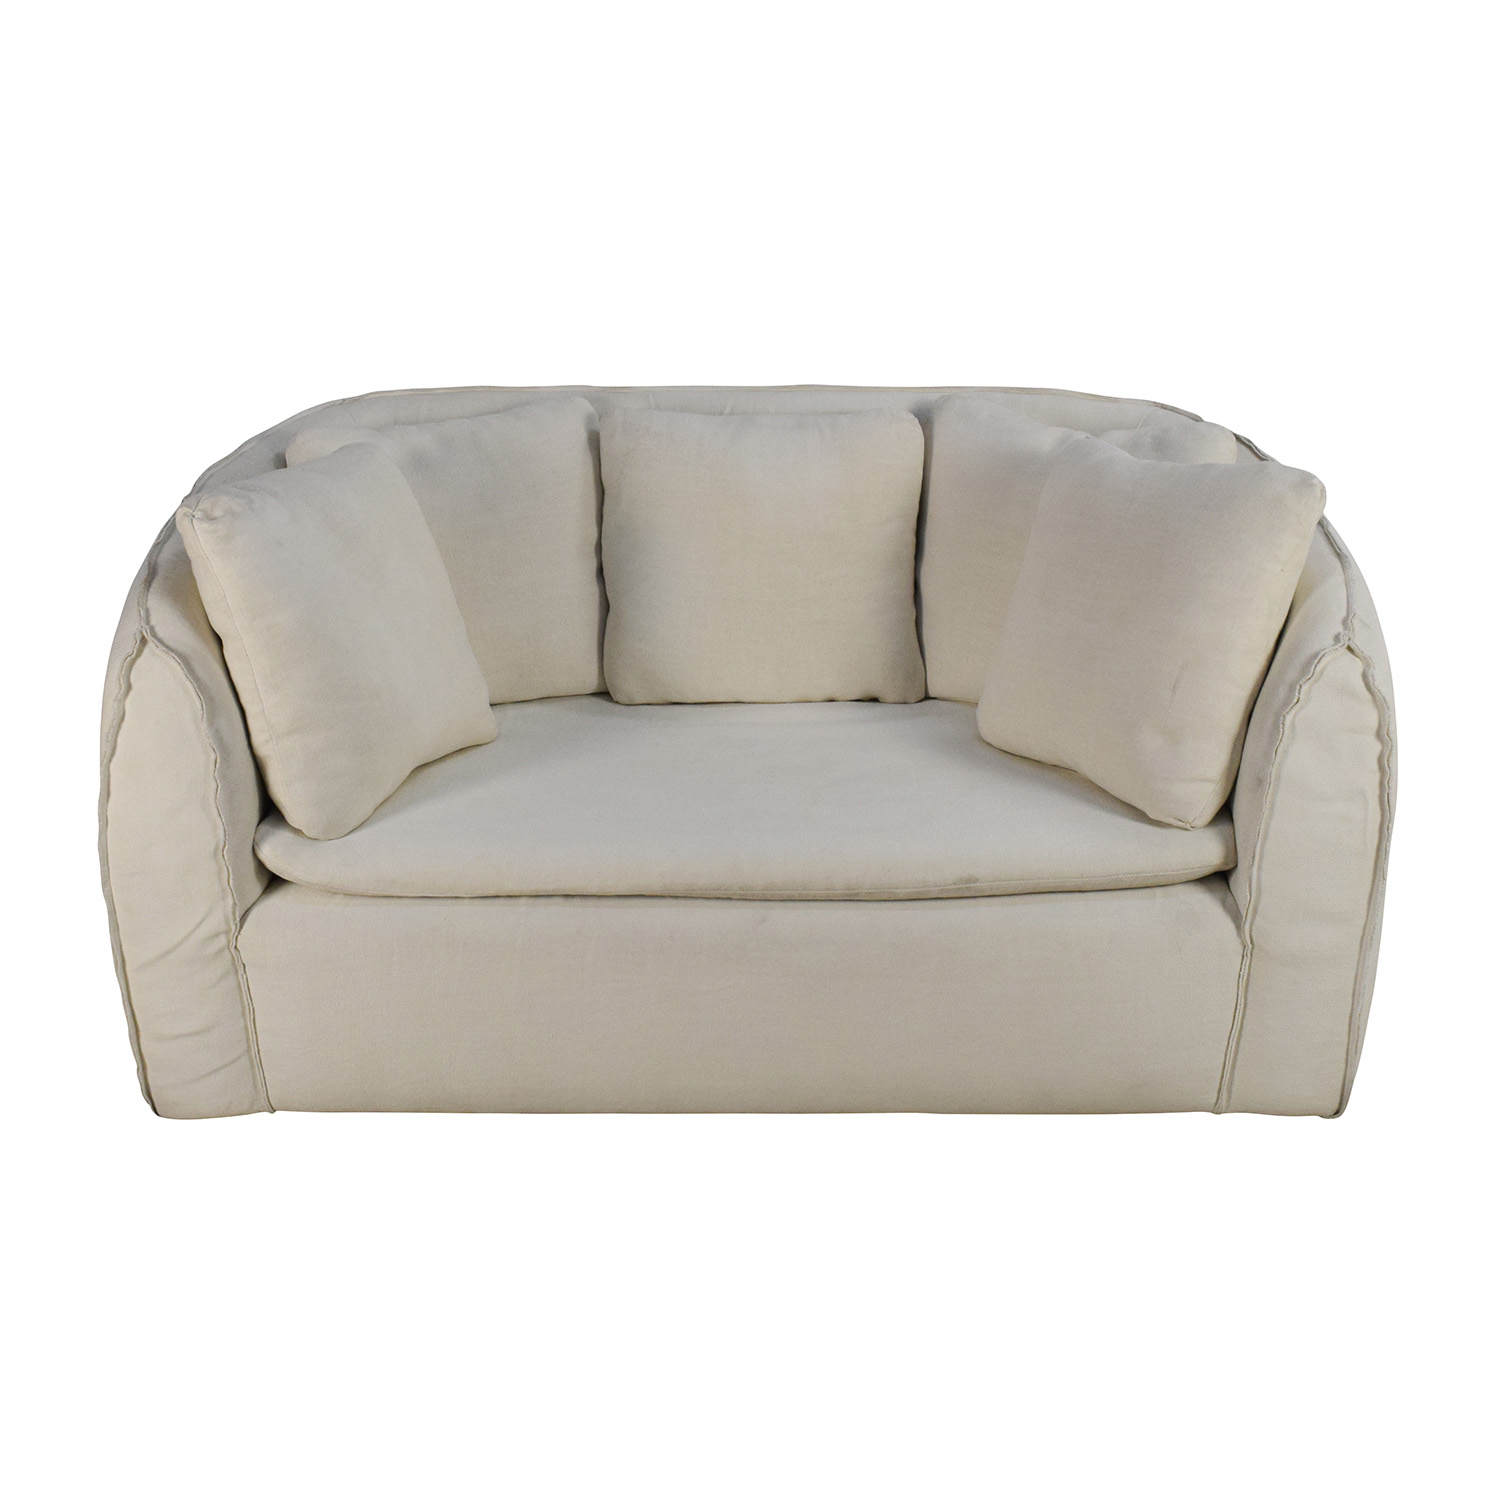 Environment Furniture Environment Furniture Pacifica White Linen Couch coupon